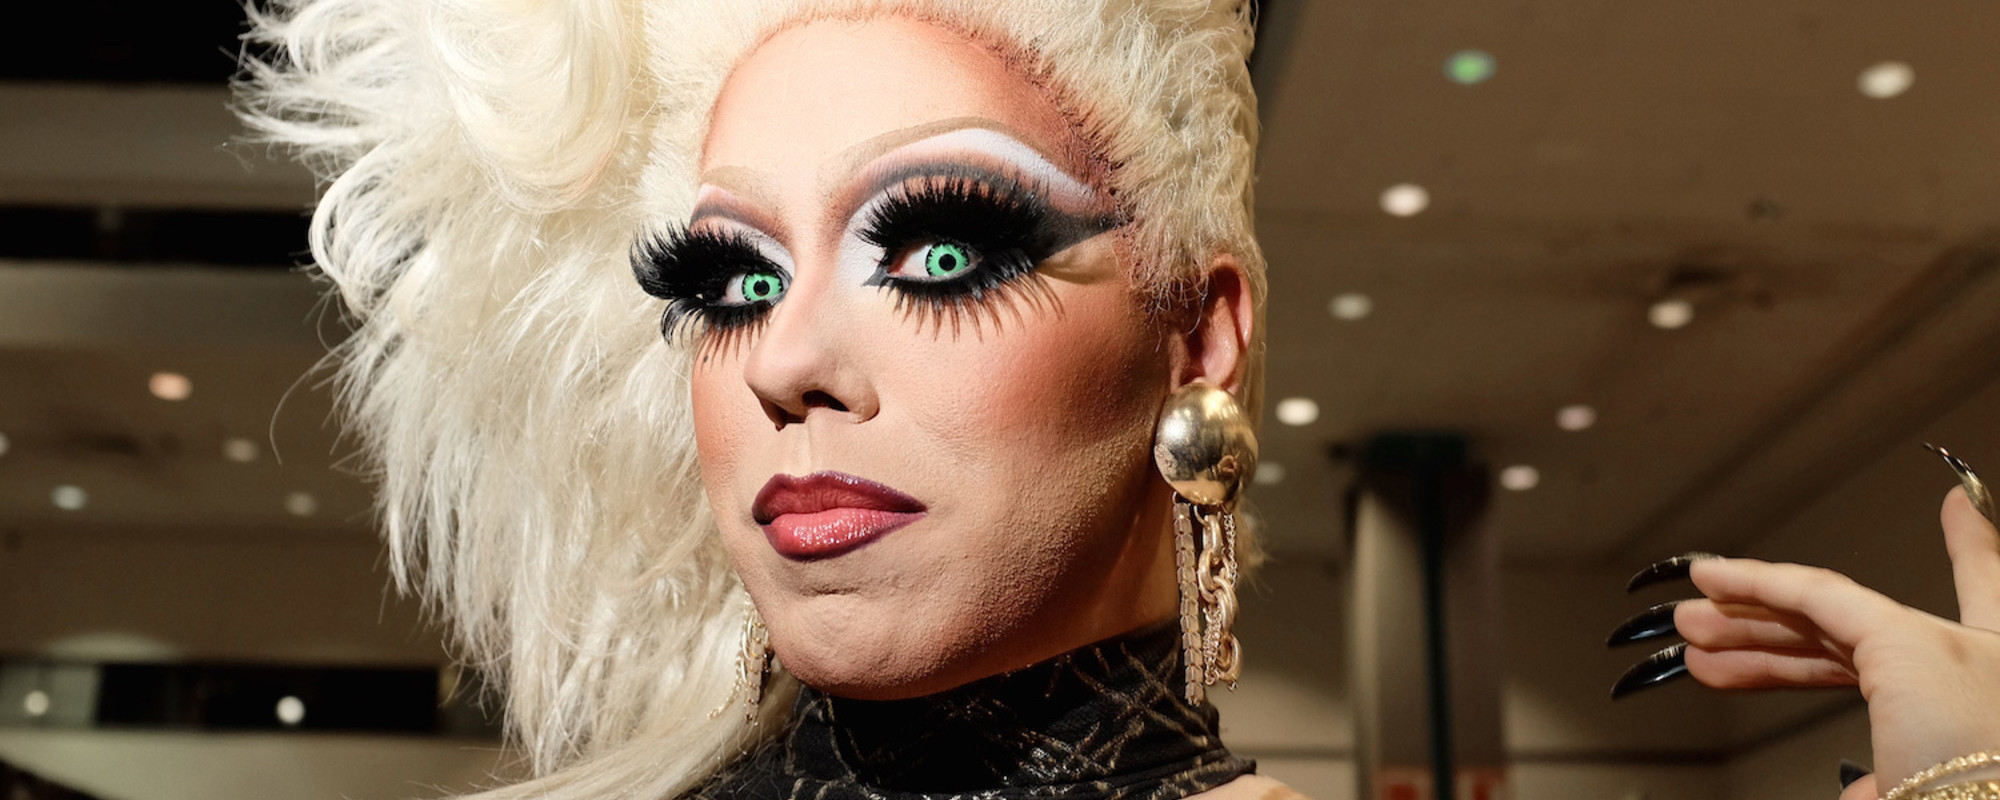 Queens Let Their Freak Flag Fly at RuPaul's First-Ever DragCon